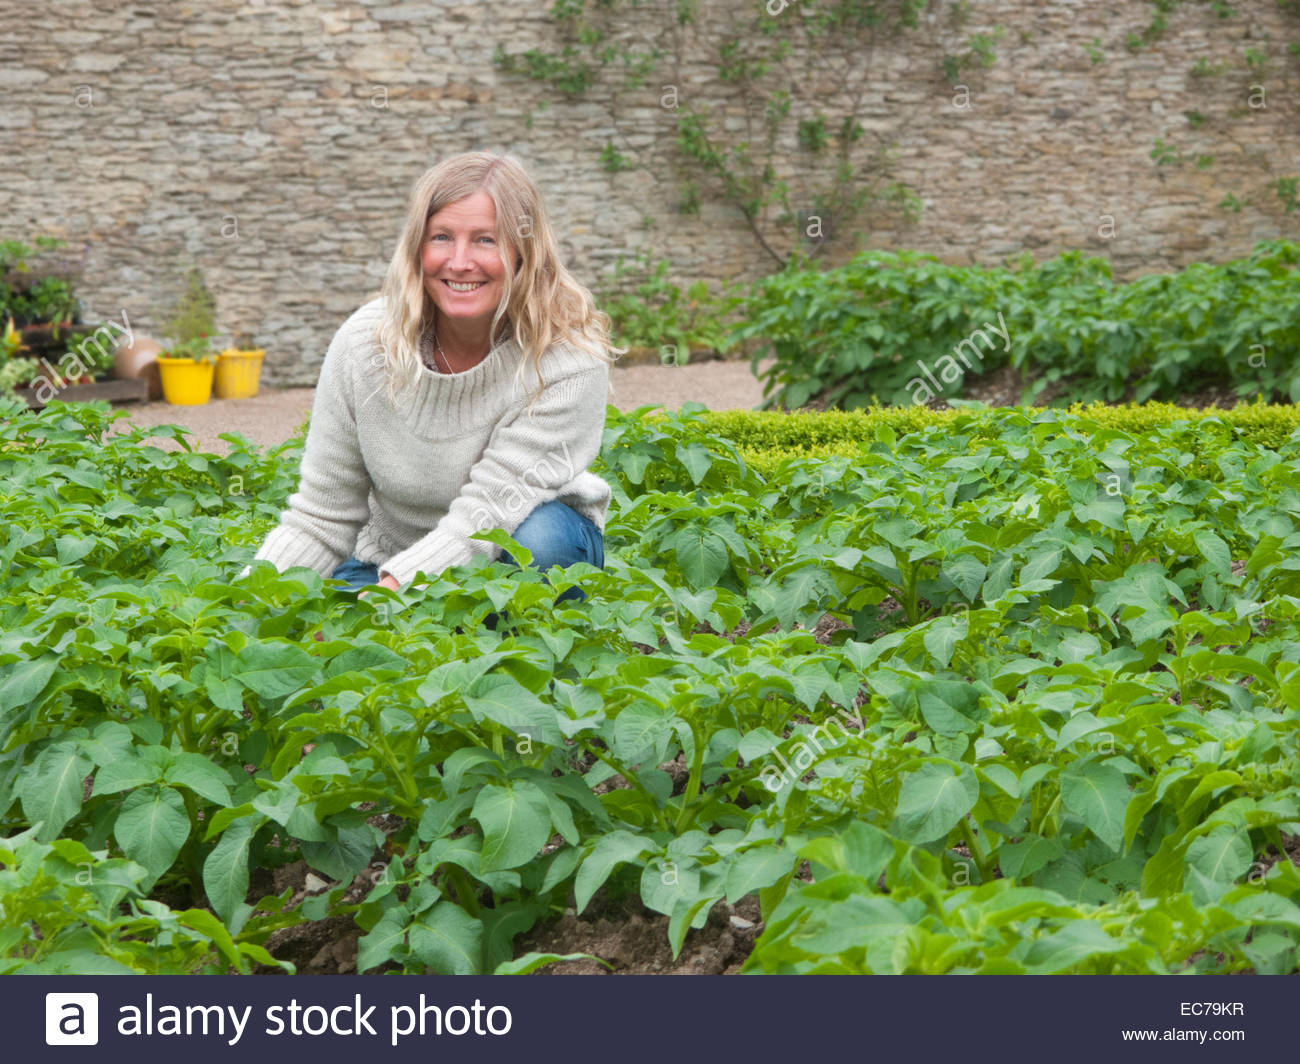 Portrait of woman gardening with potato plants - Stock Image